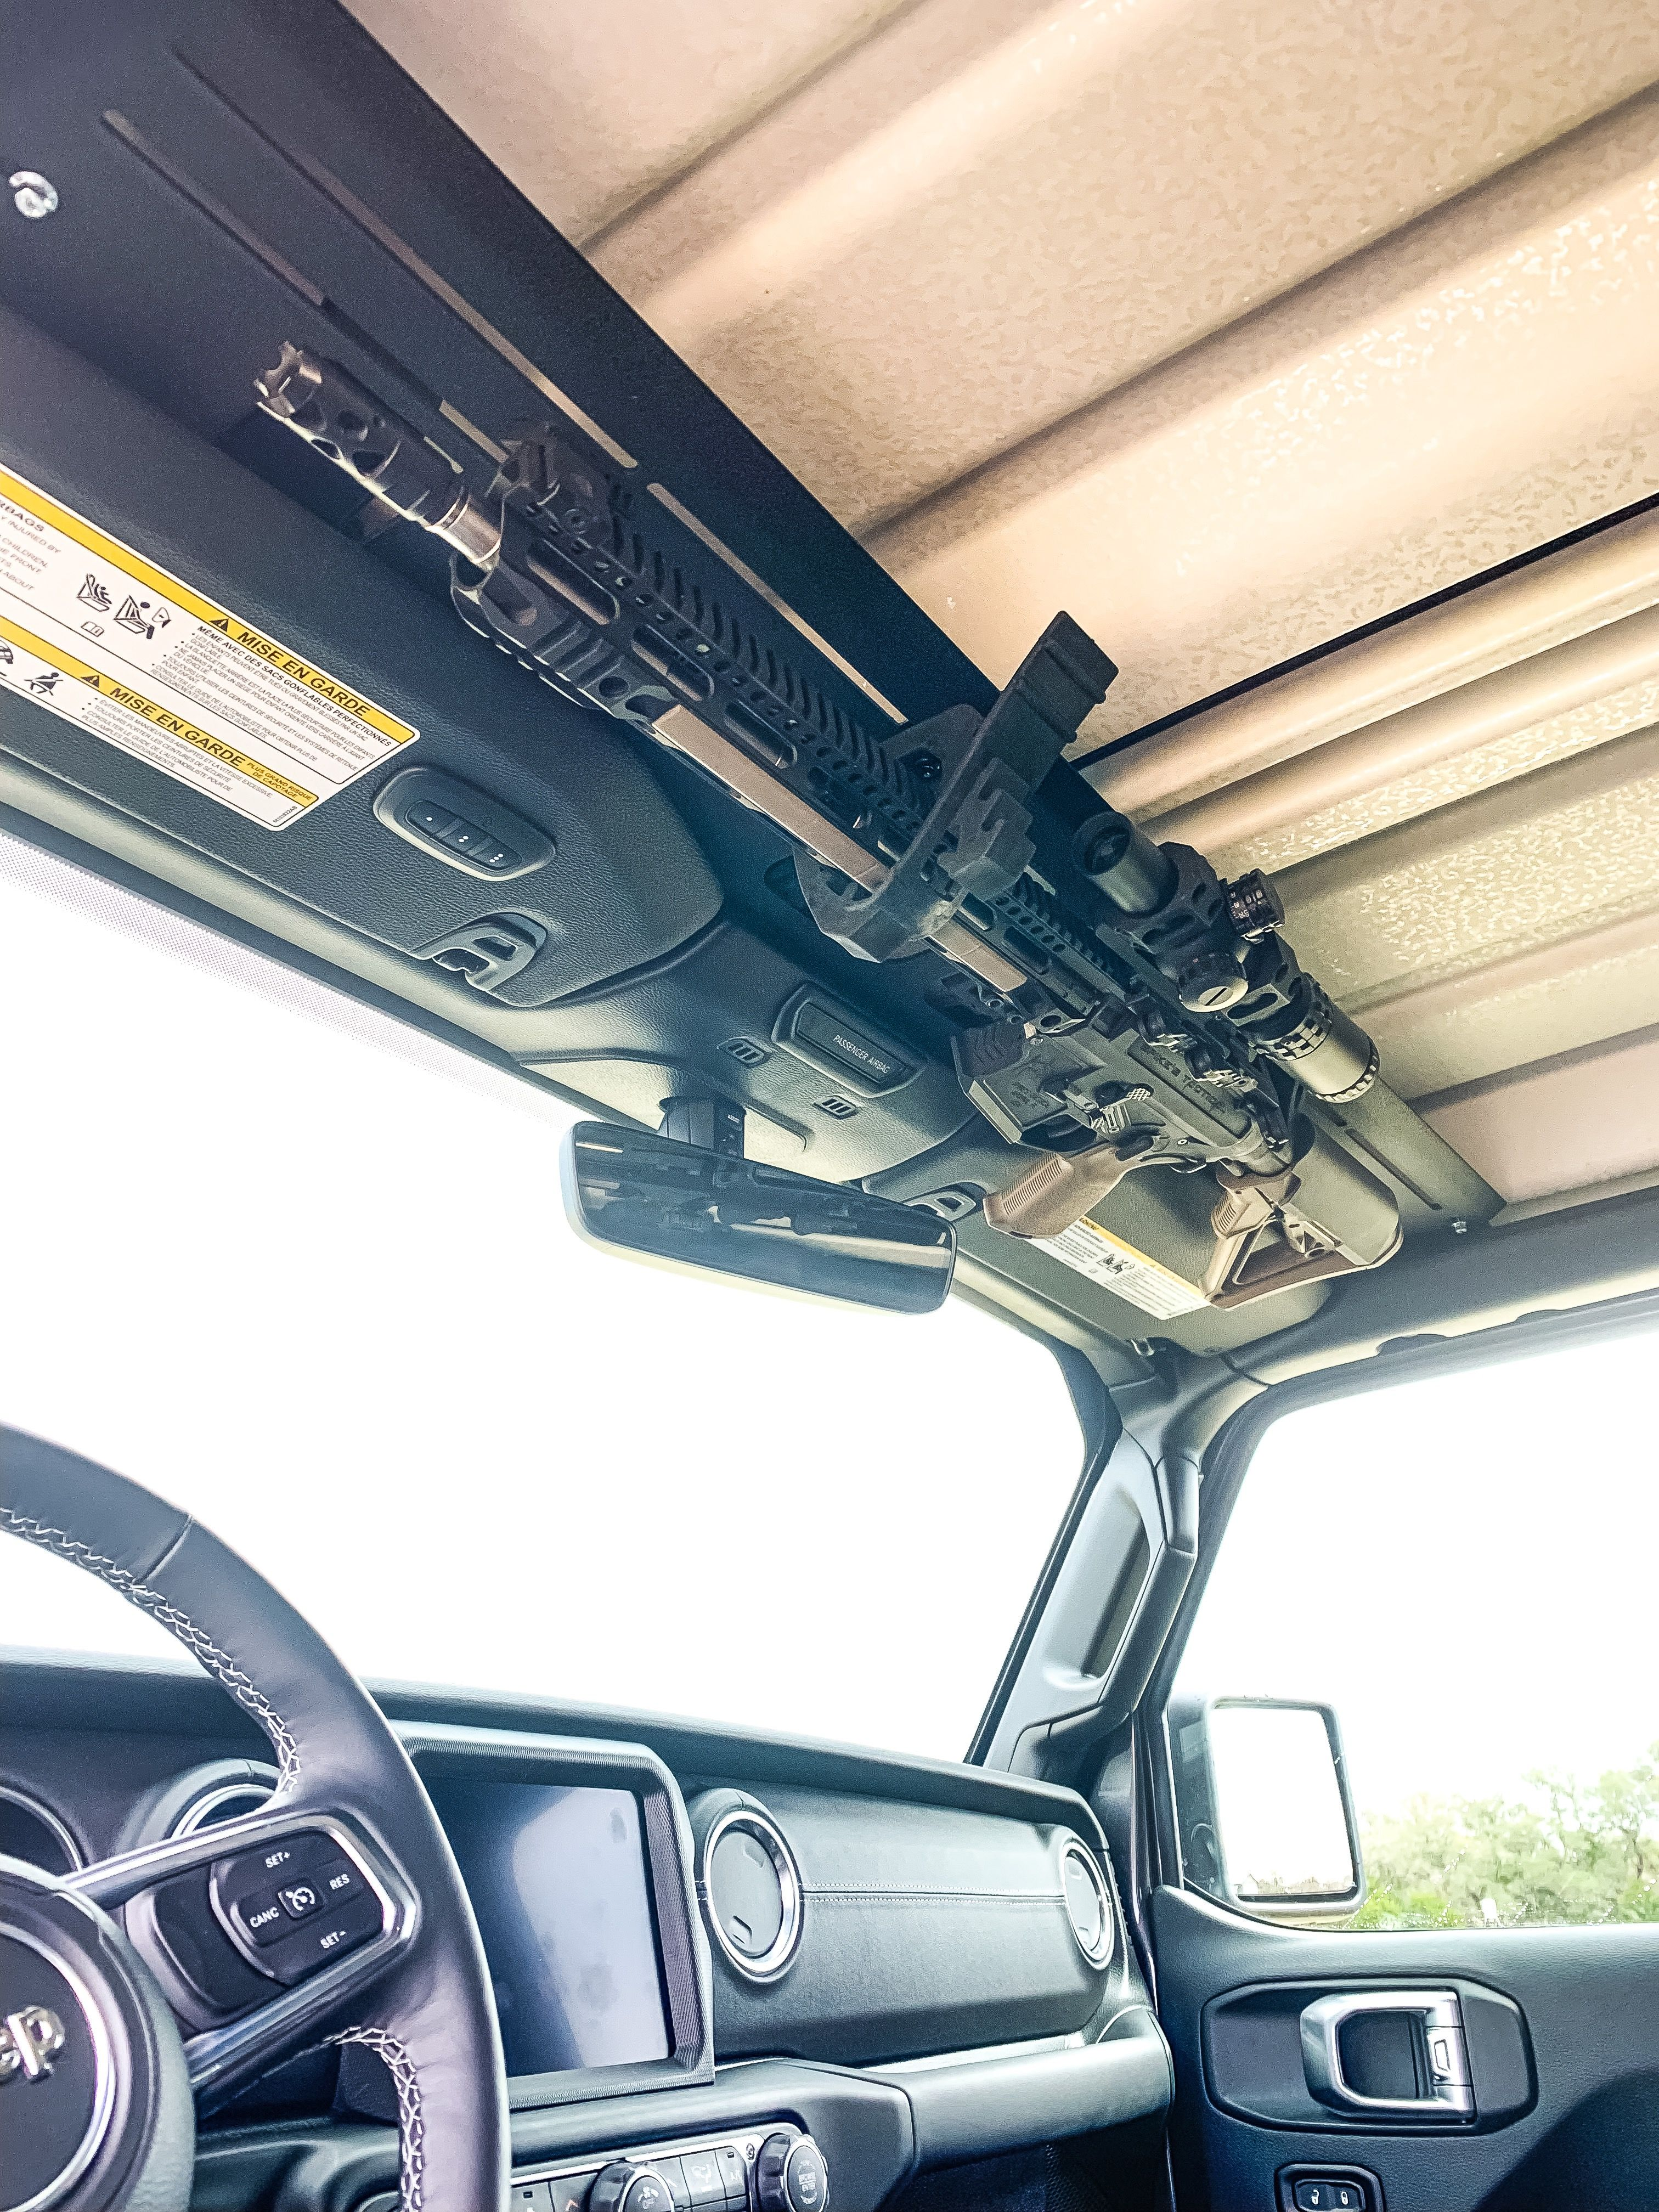 Jl Jeep Overhead Storage And Weapon Mount Tactical Truck Jeep